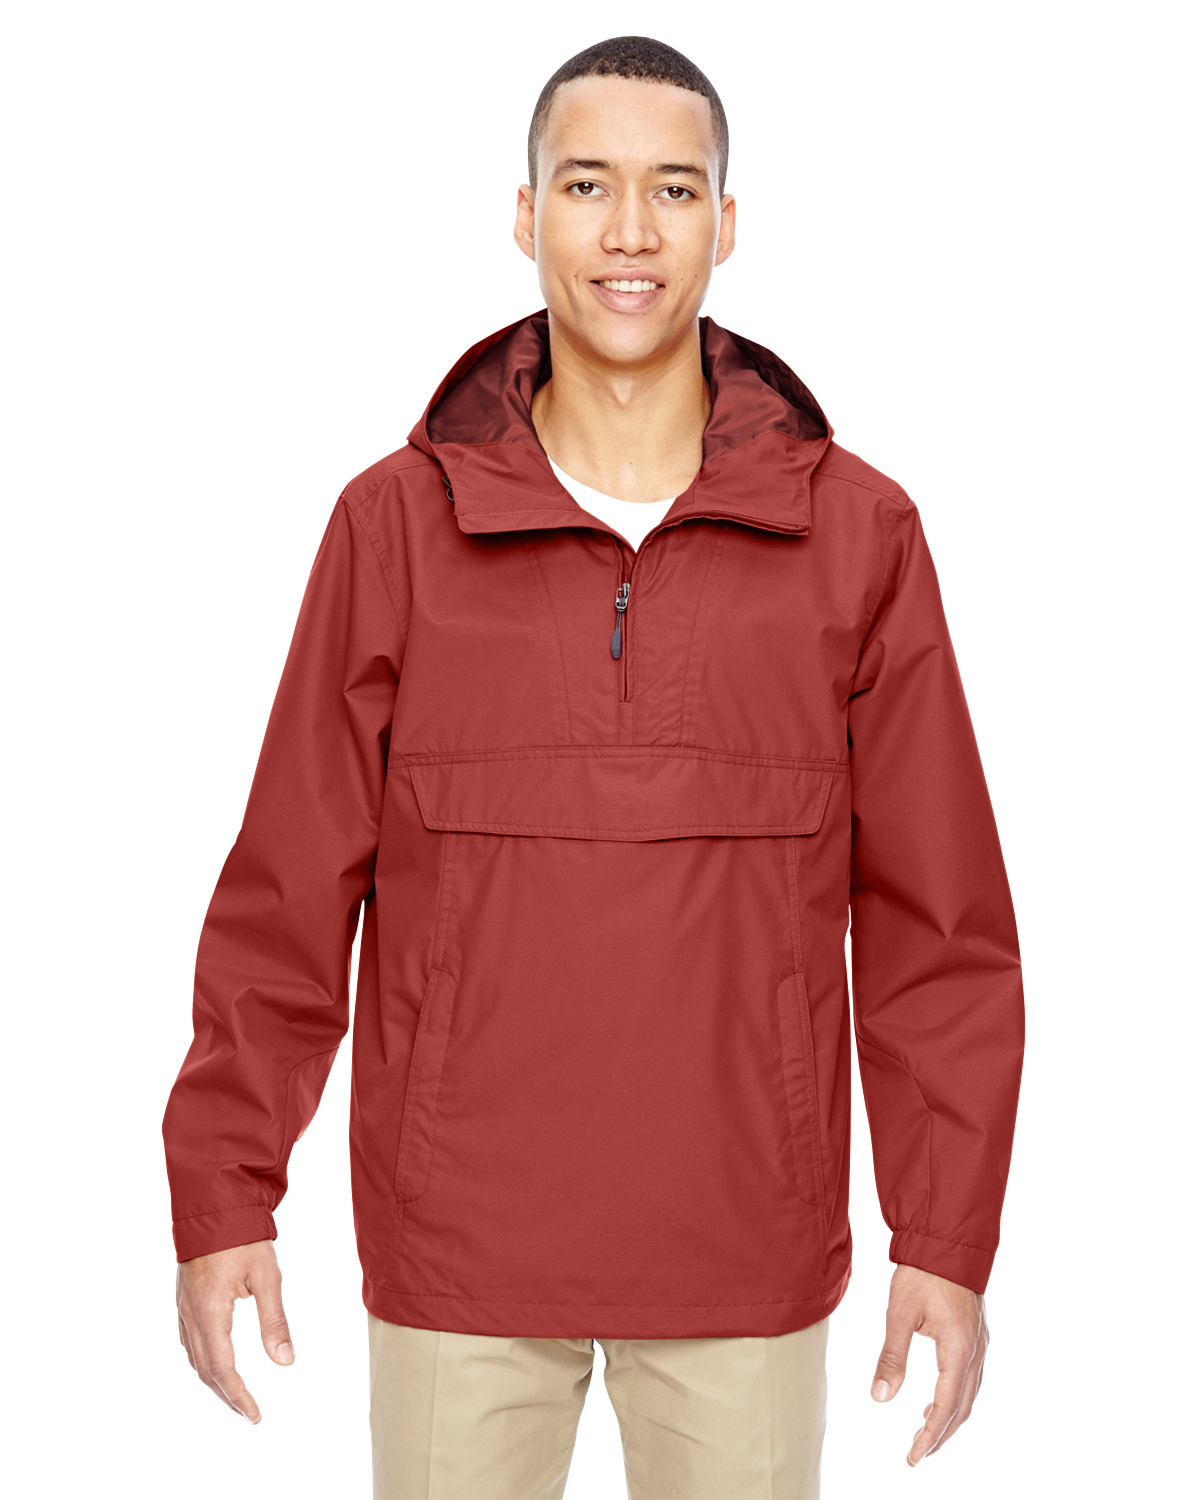 Ash City - 88219, Men's Excursion Intrepid Lightweight Anorak - Logo Masters International